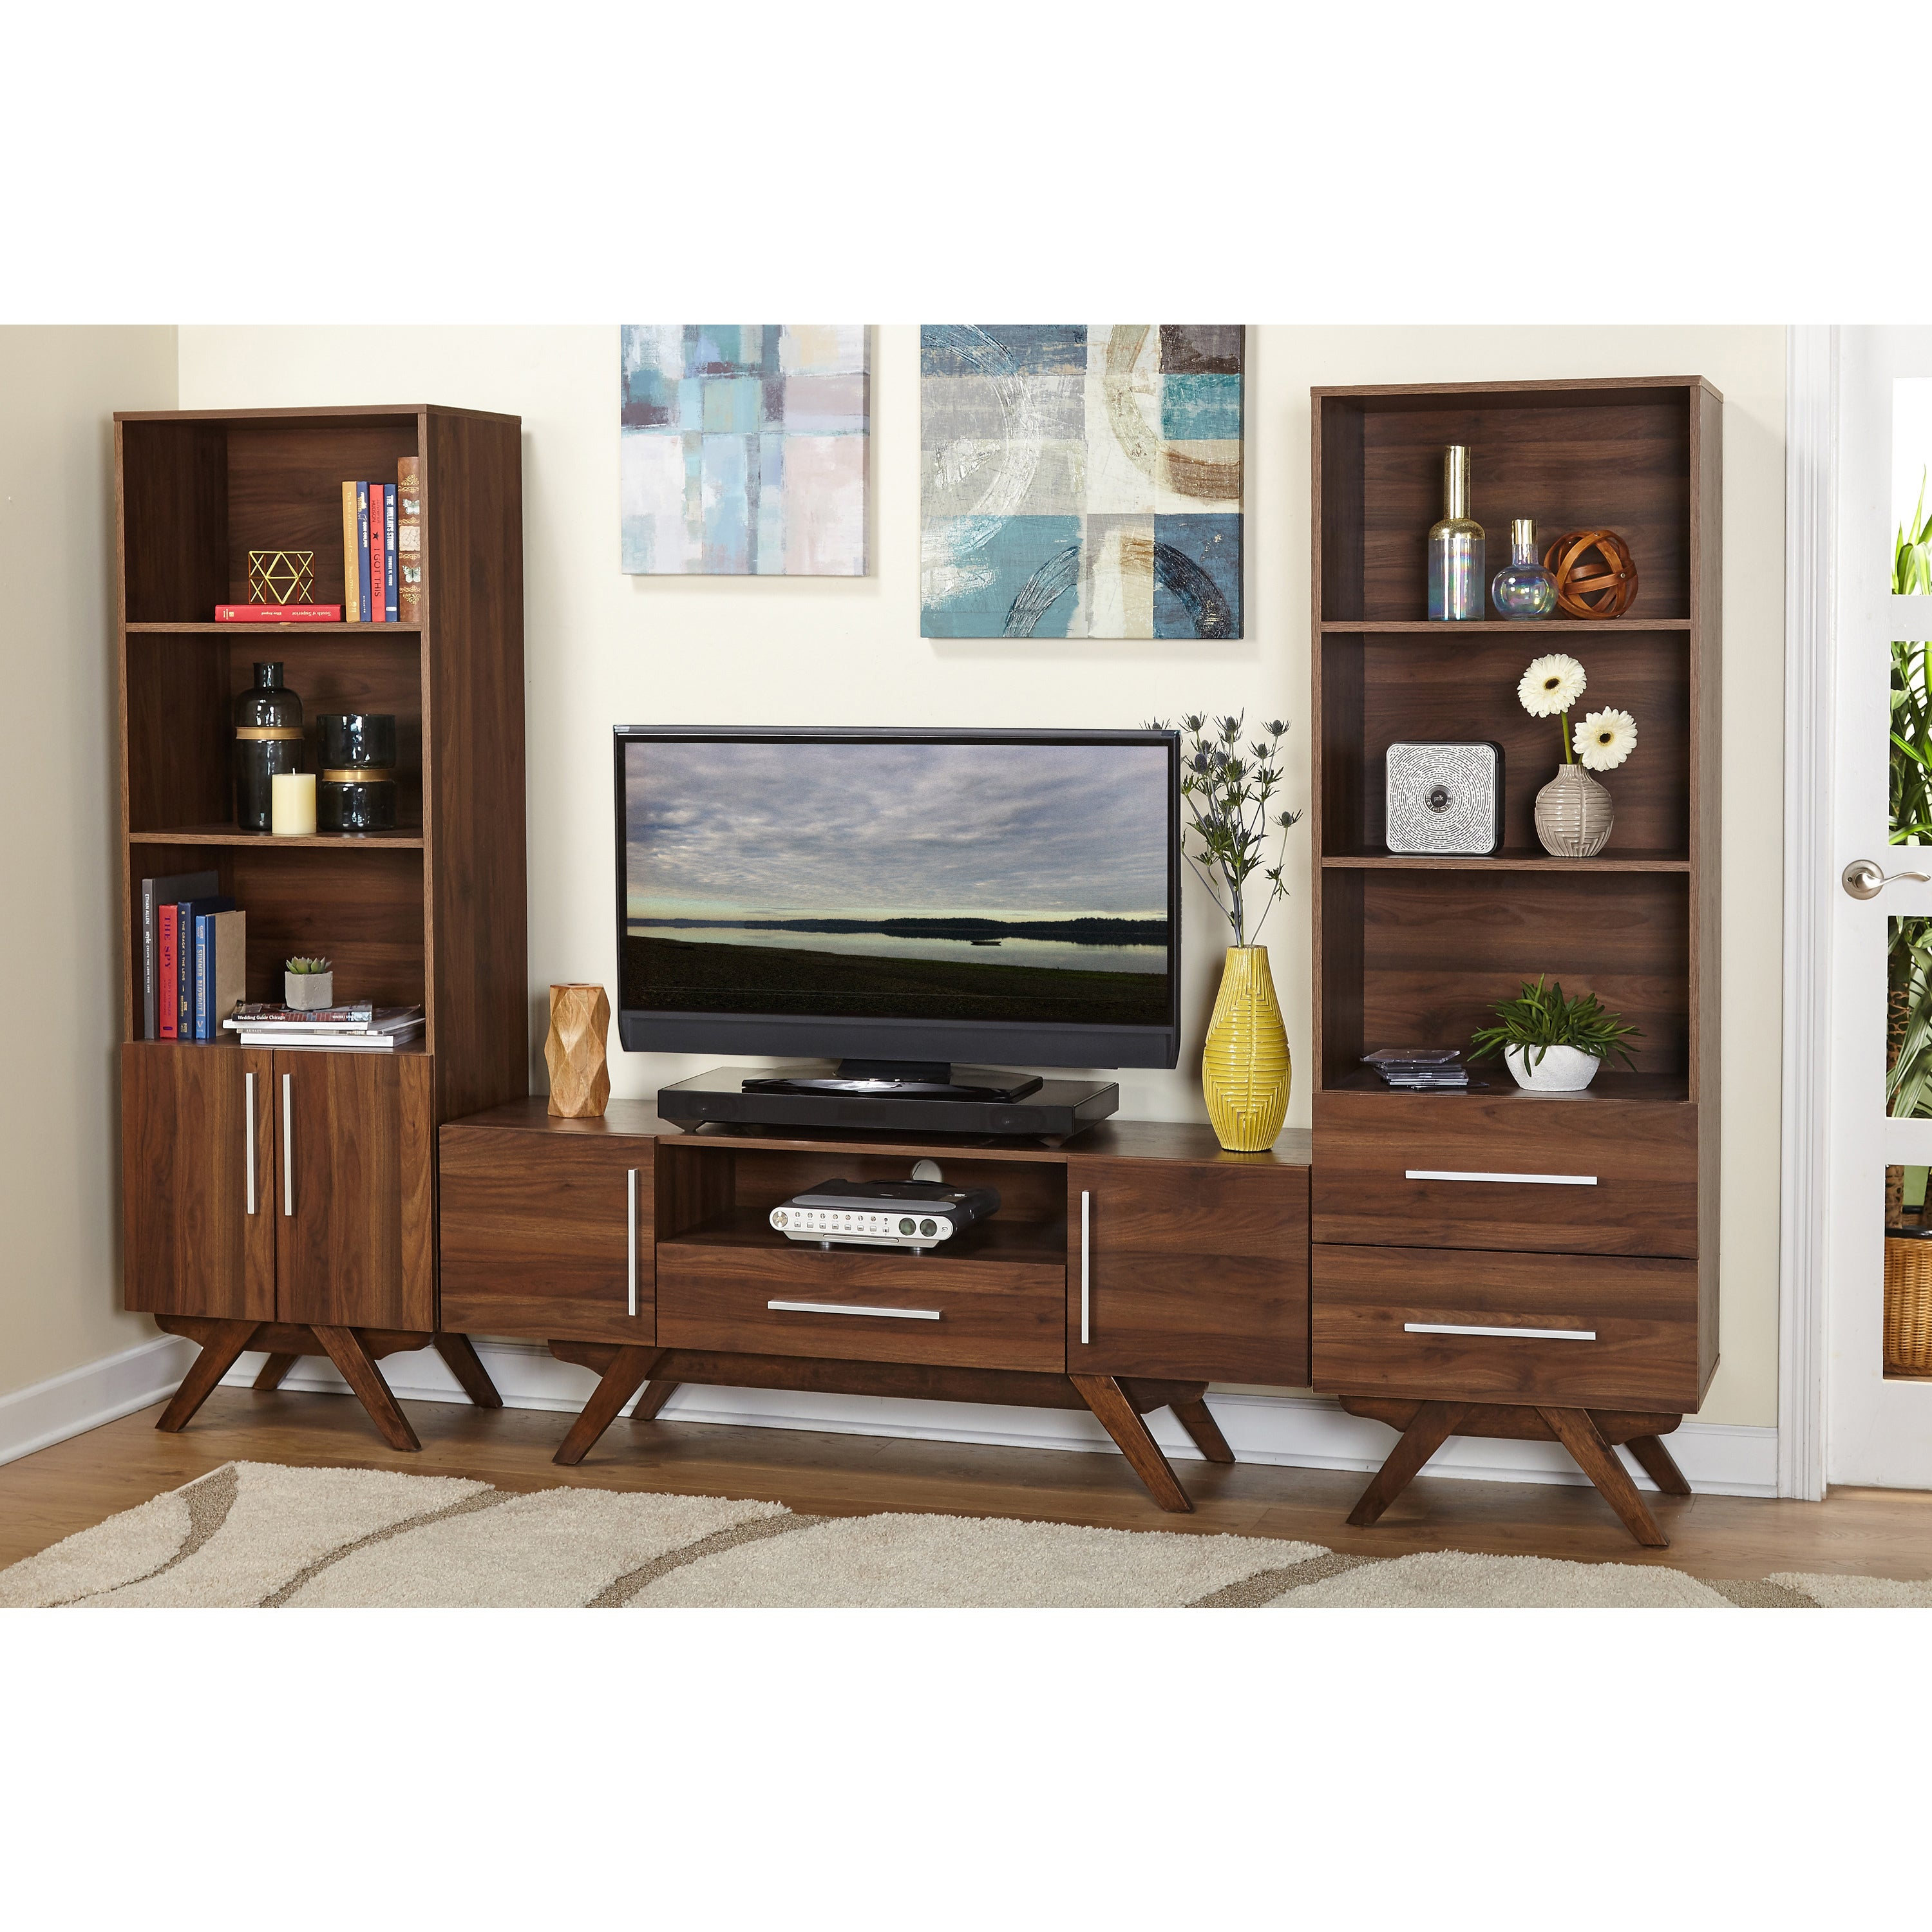 Shop simple living ashfield mid century entertainment unit on sale free shipping today overstock com 14289269